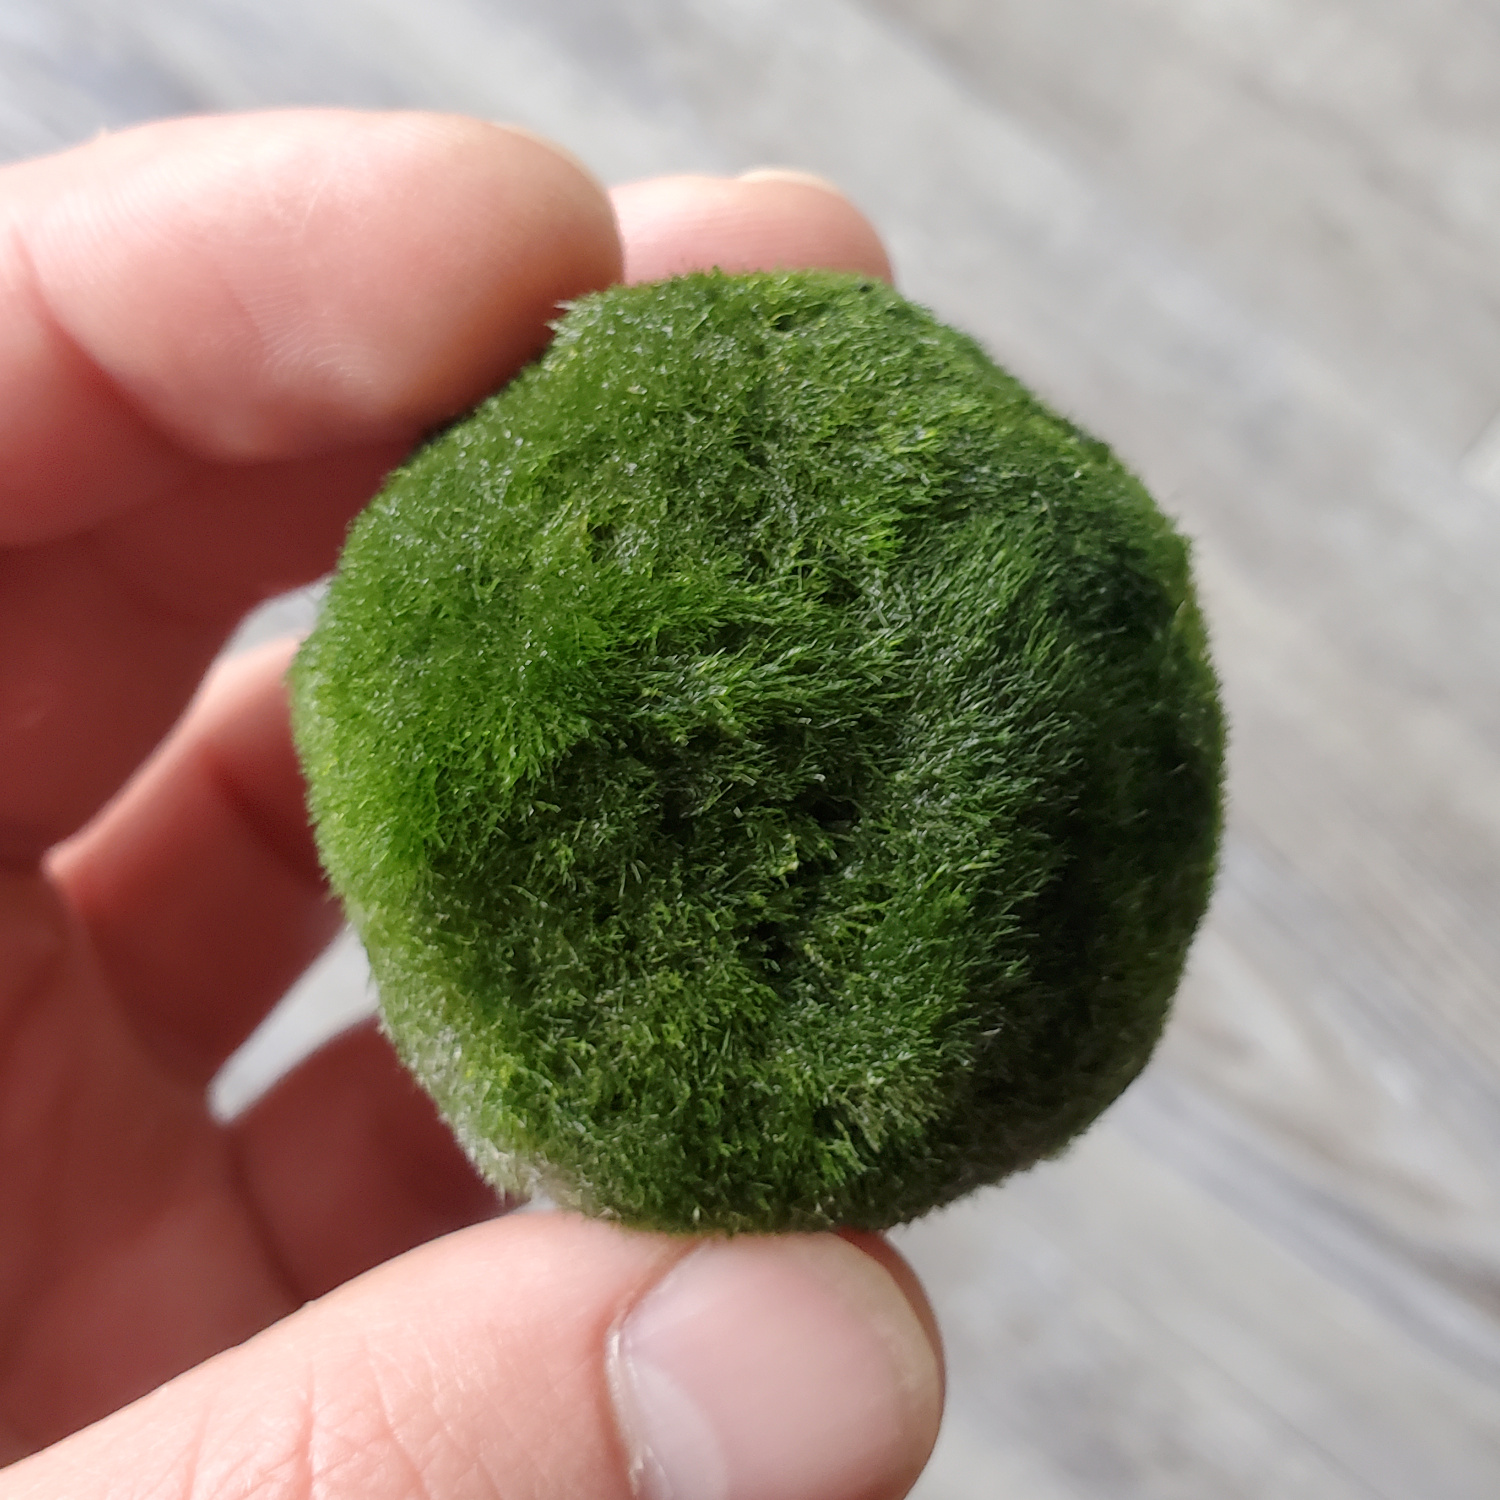 The marimo moss ball is growing happily